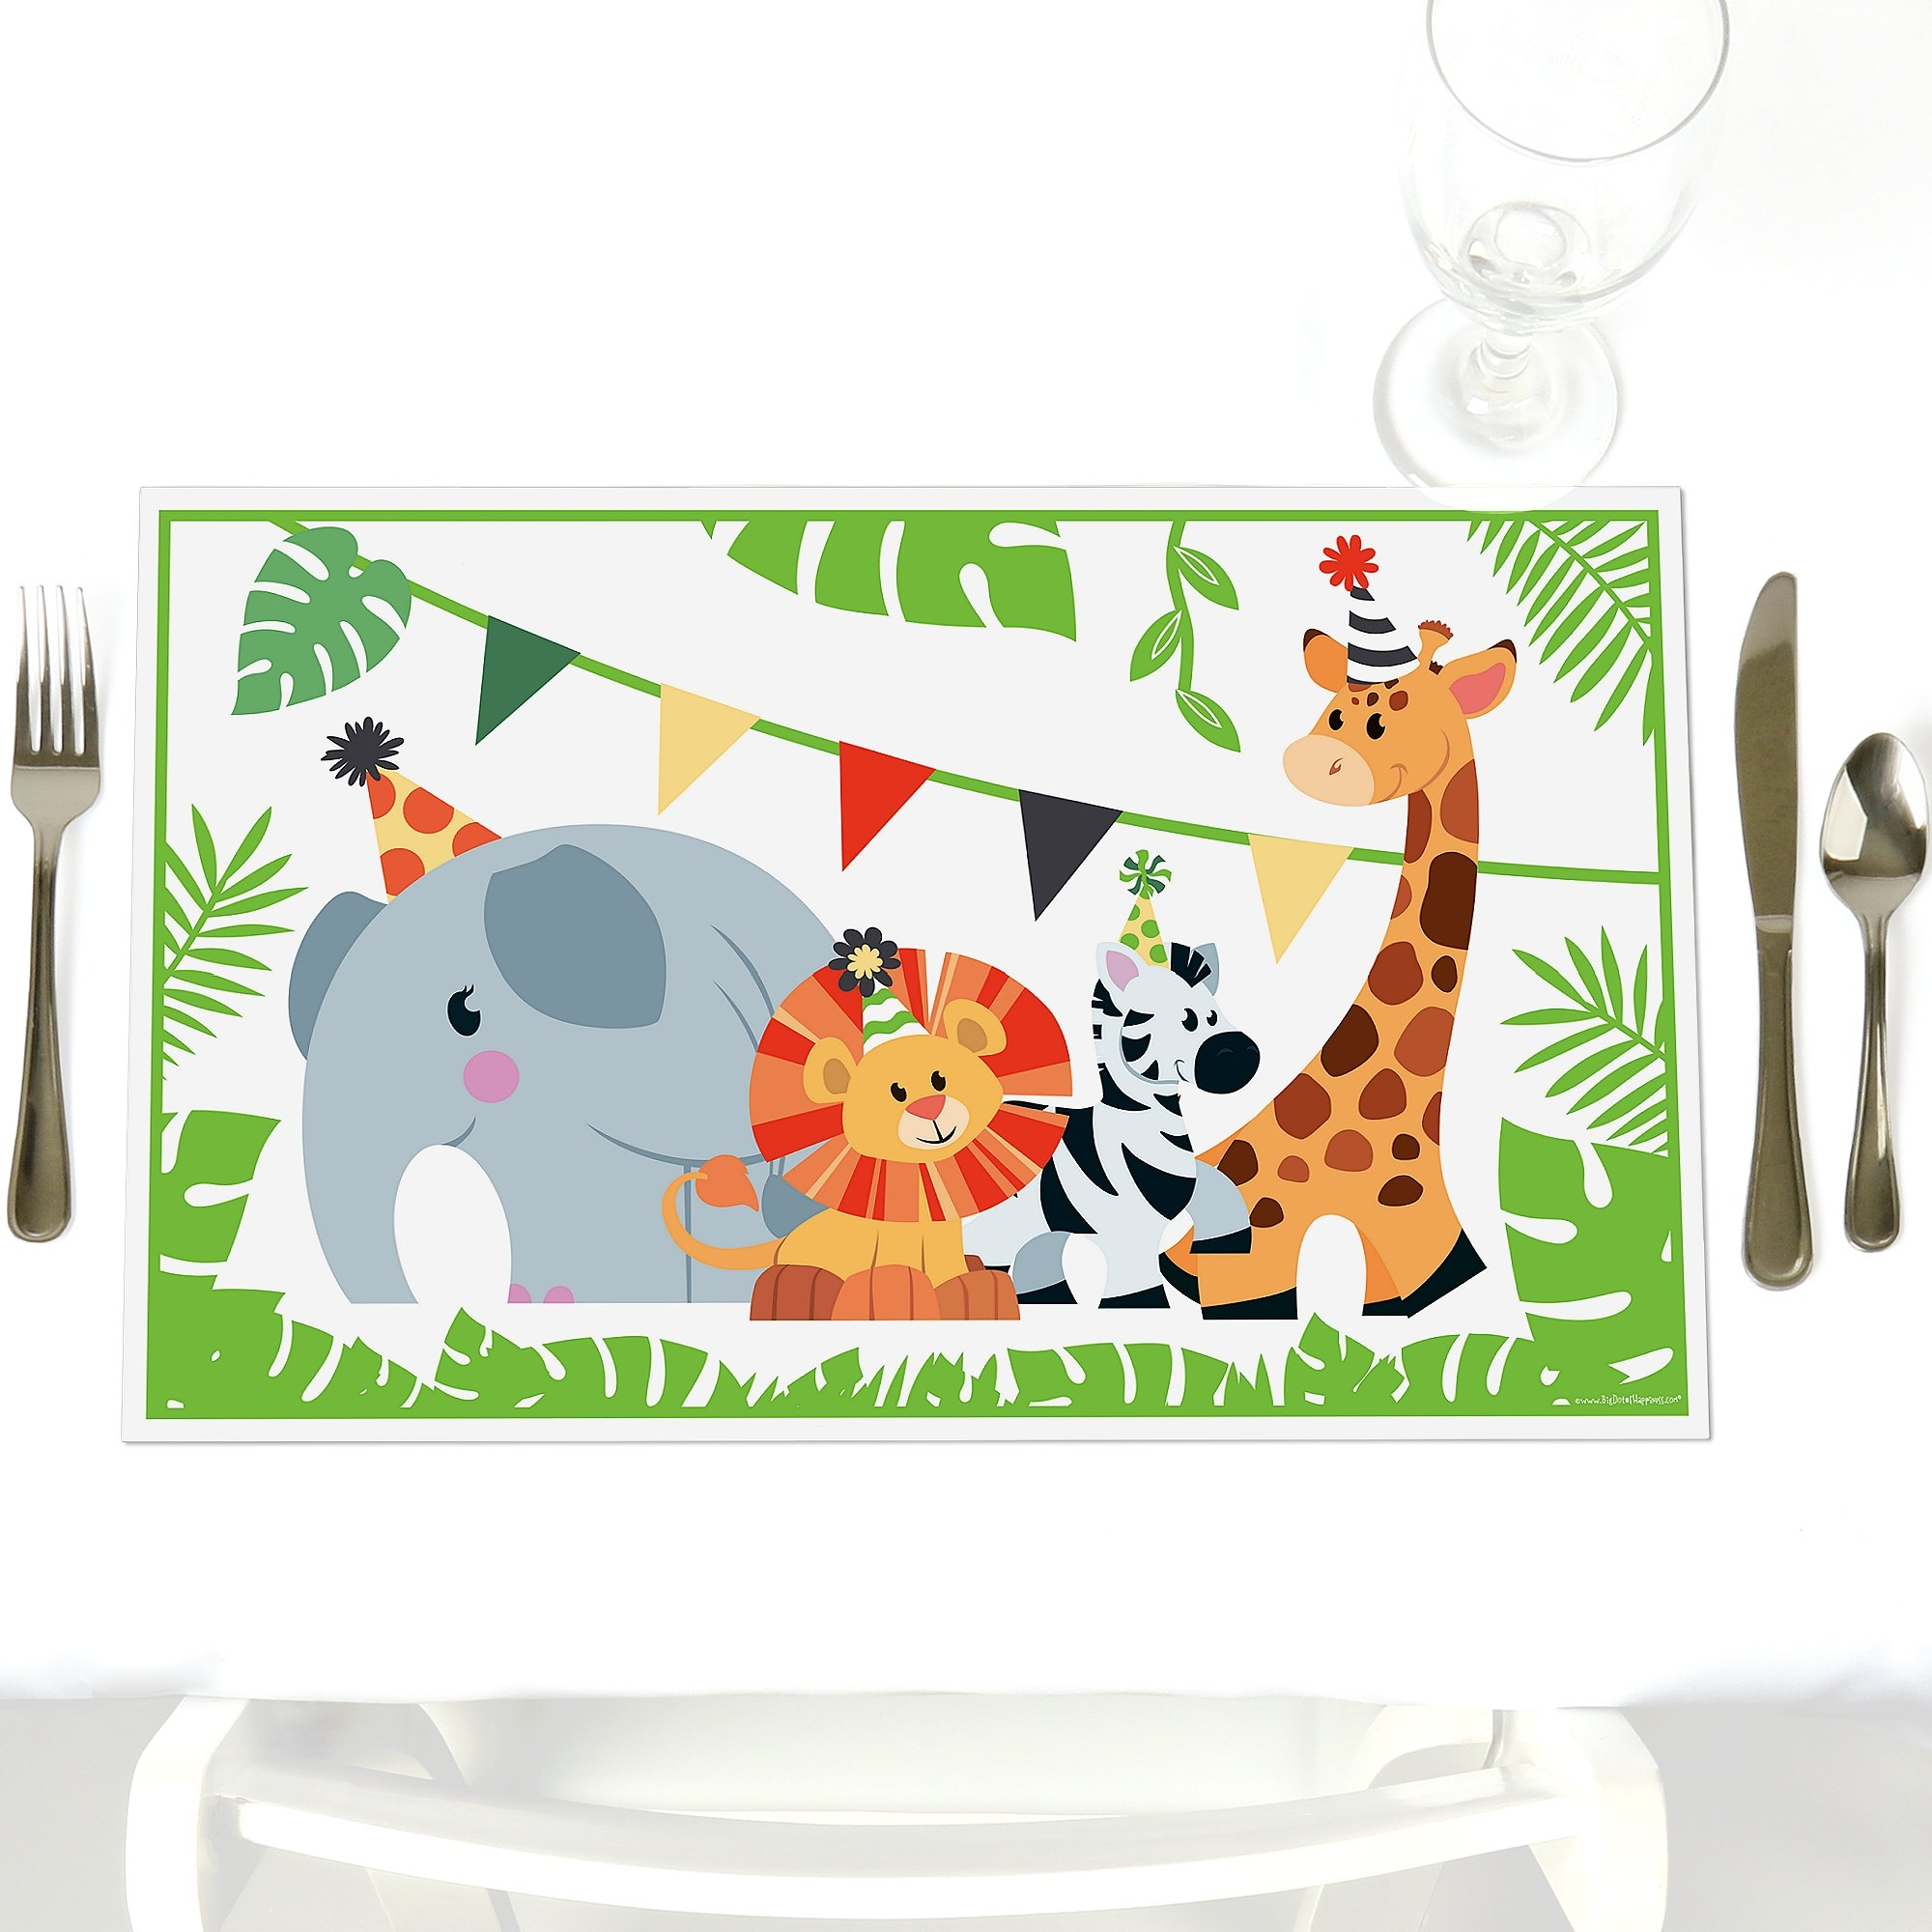 Jungle Party Animals - Party Table Decorations - Safari Zoo Animal Birthday Party or Baby Shower Placemats - Set of 12